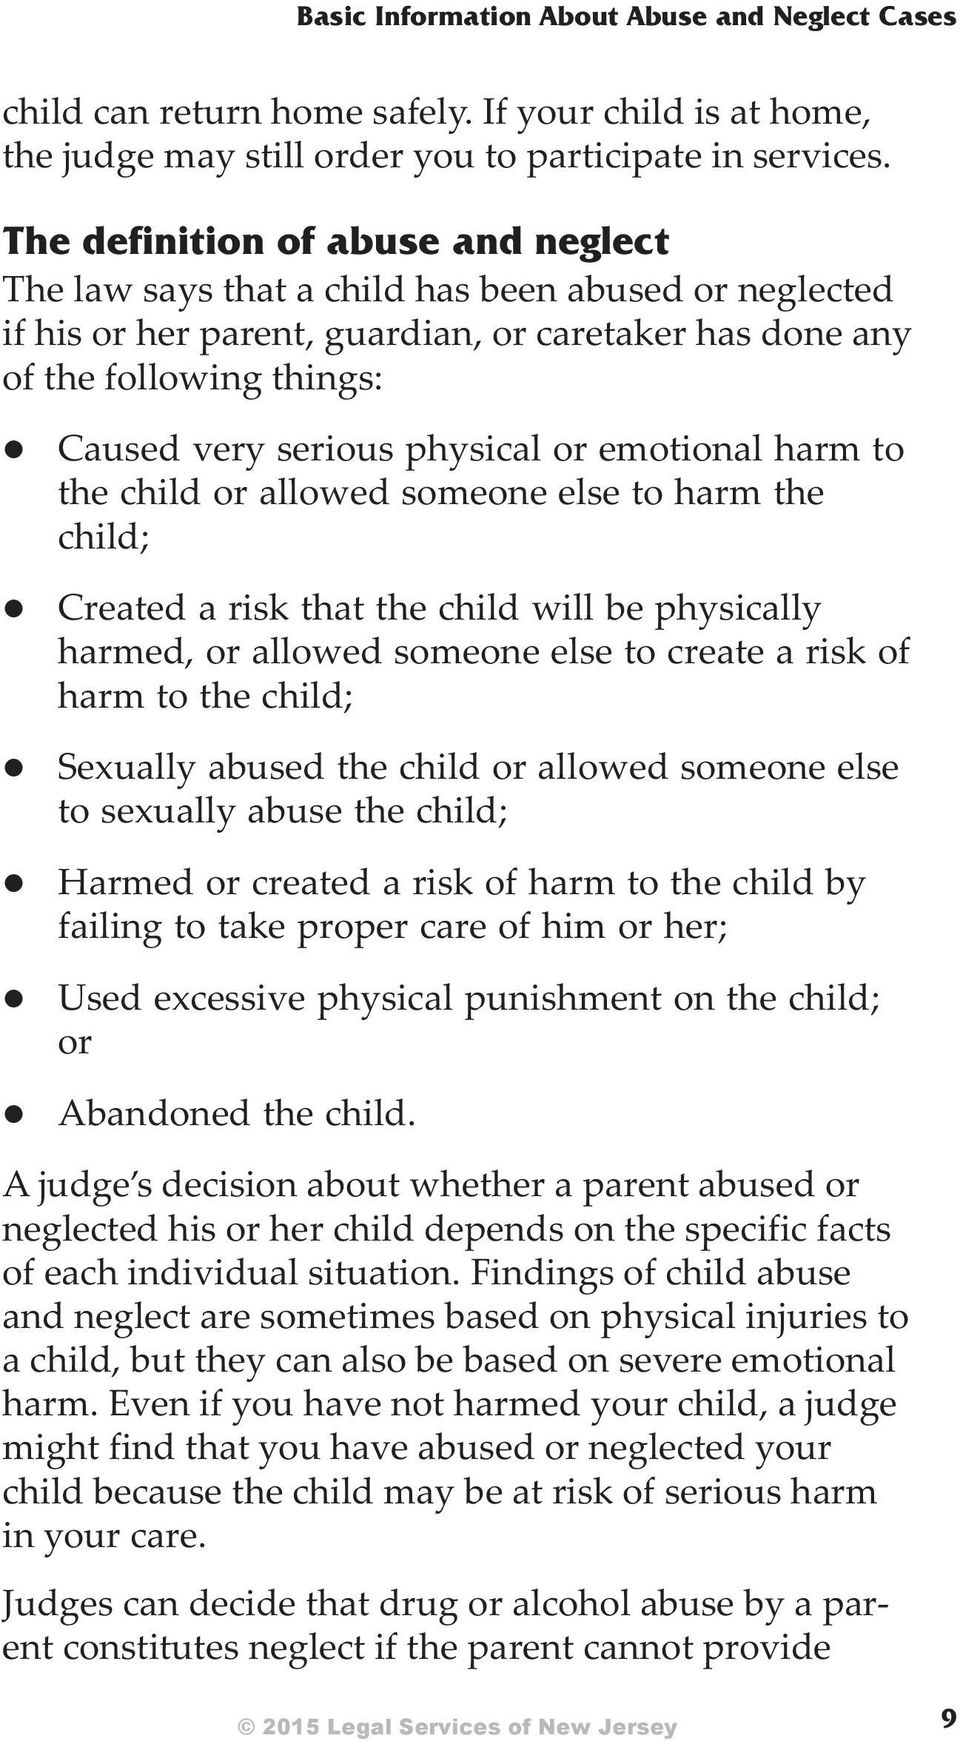 ri ous phys i cal or emo tional harm to the child or al lowed some one else to harm the child; Cre ated a risk that the child will be phys i cally harmed, or al lowed some one else to cre ate a risk